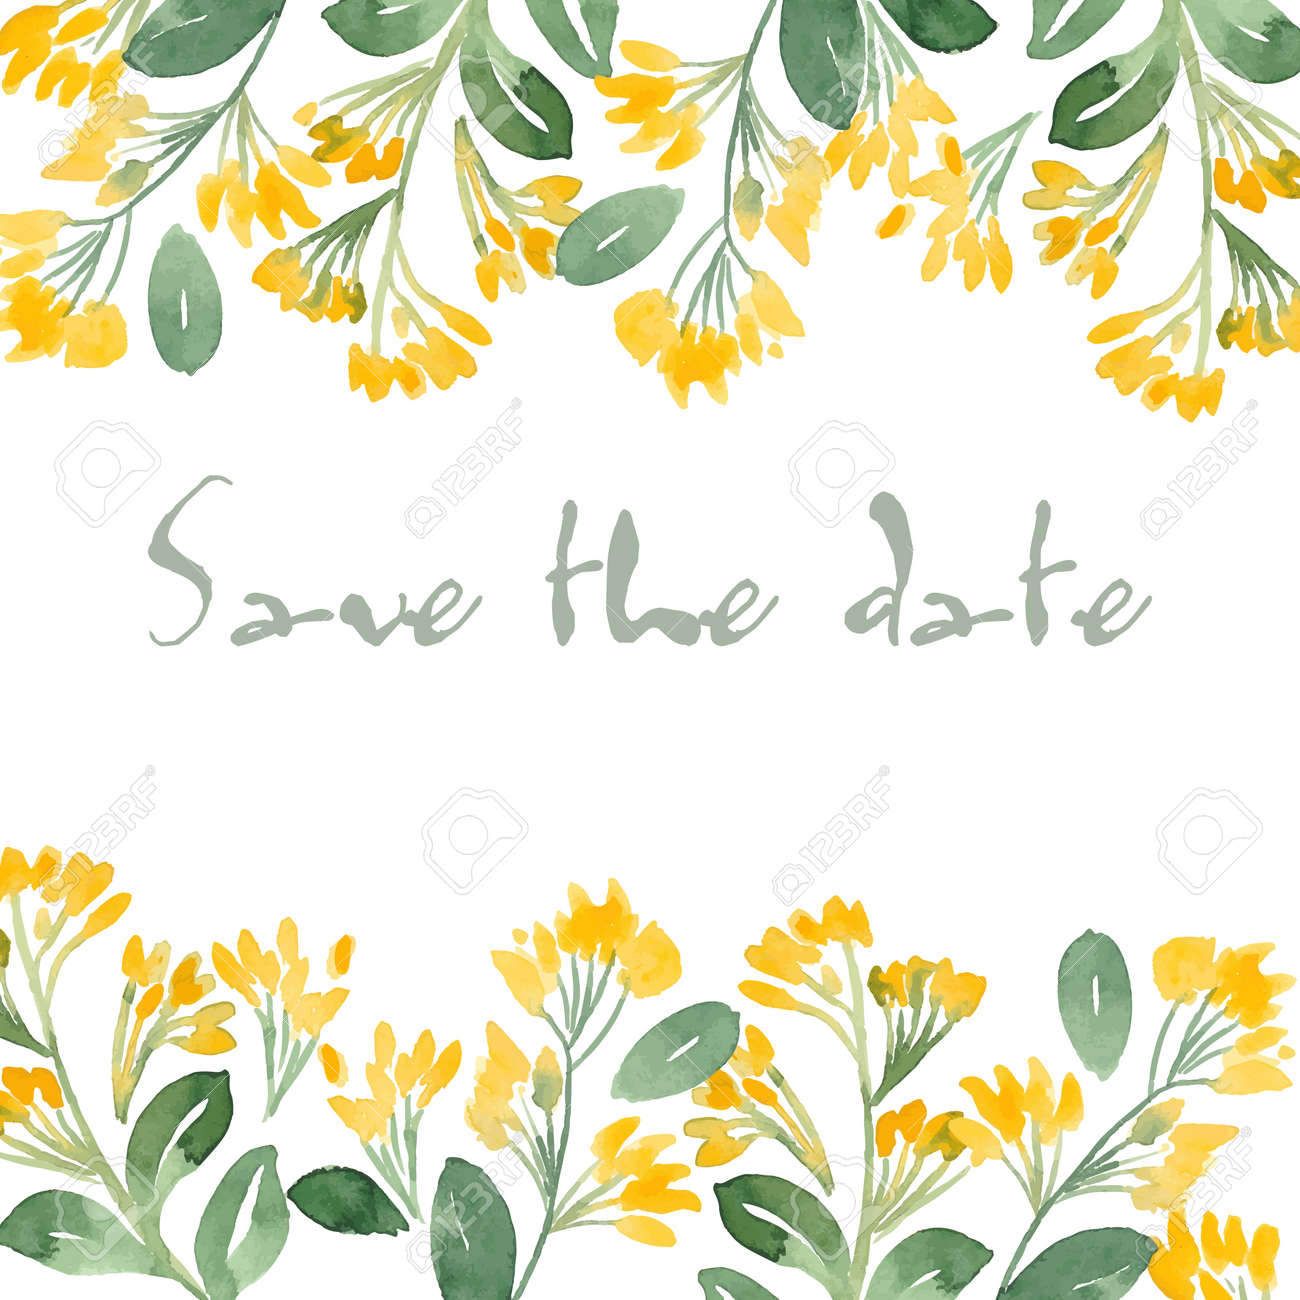 Save The Date Invitation With Watercolor Flowers. Vector Watercolor ...